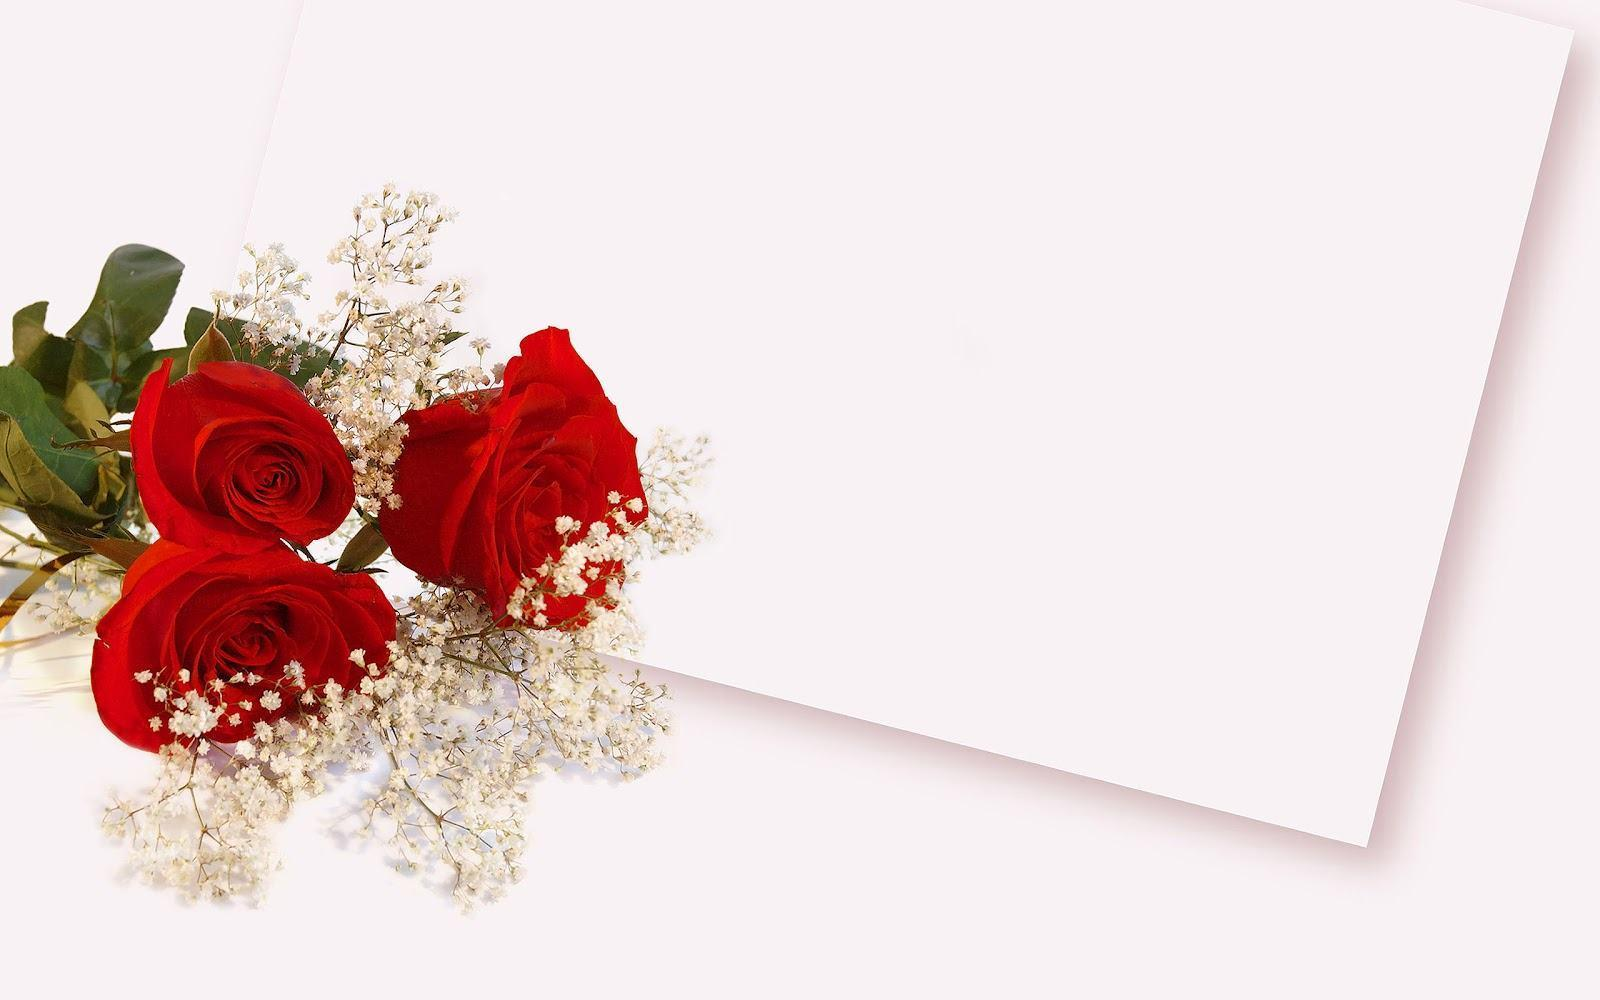 red rose background hd - photo #38